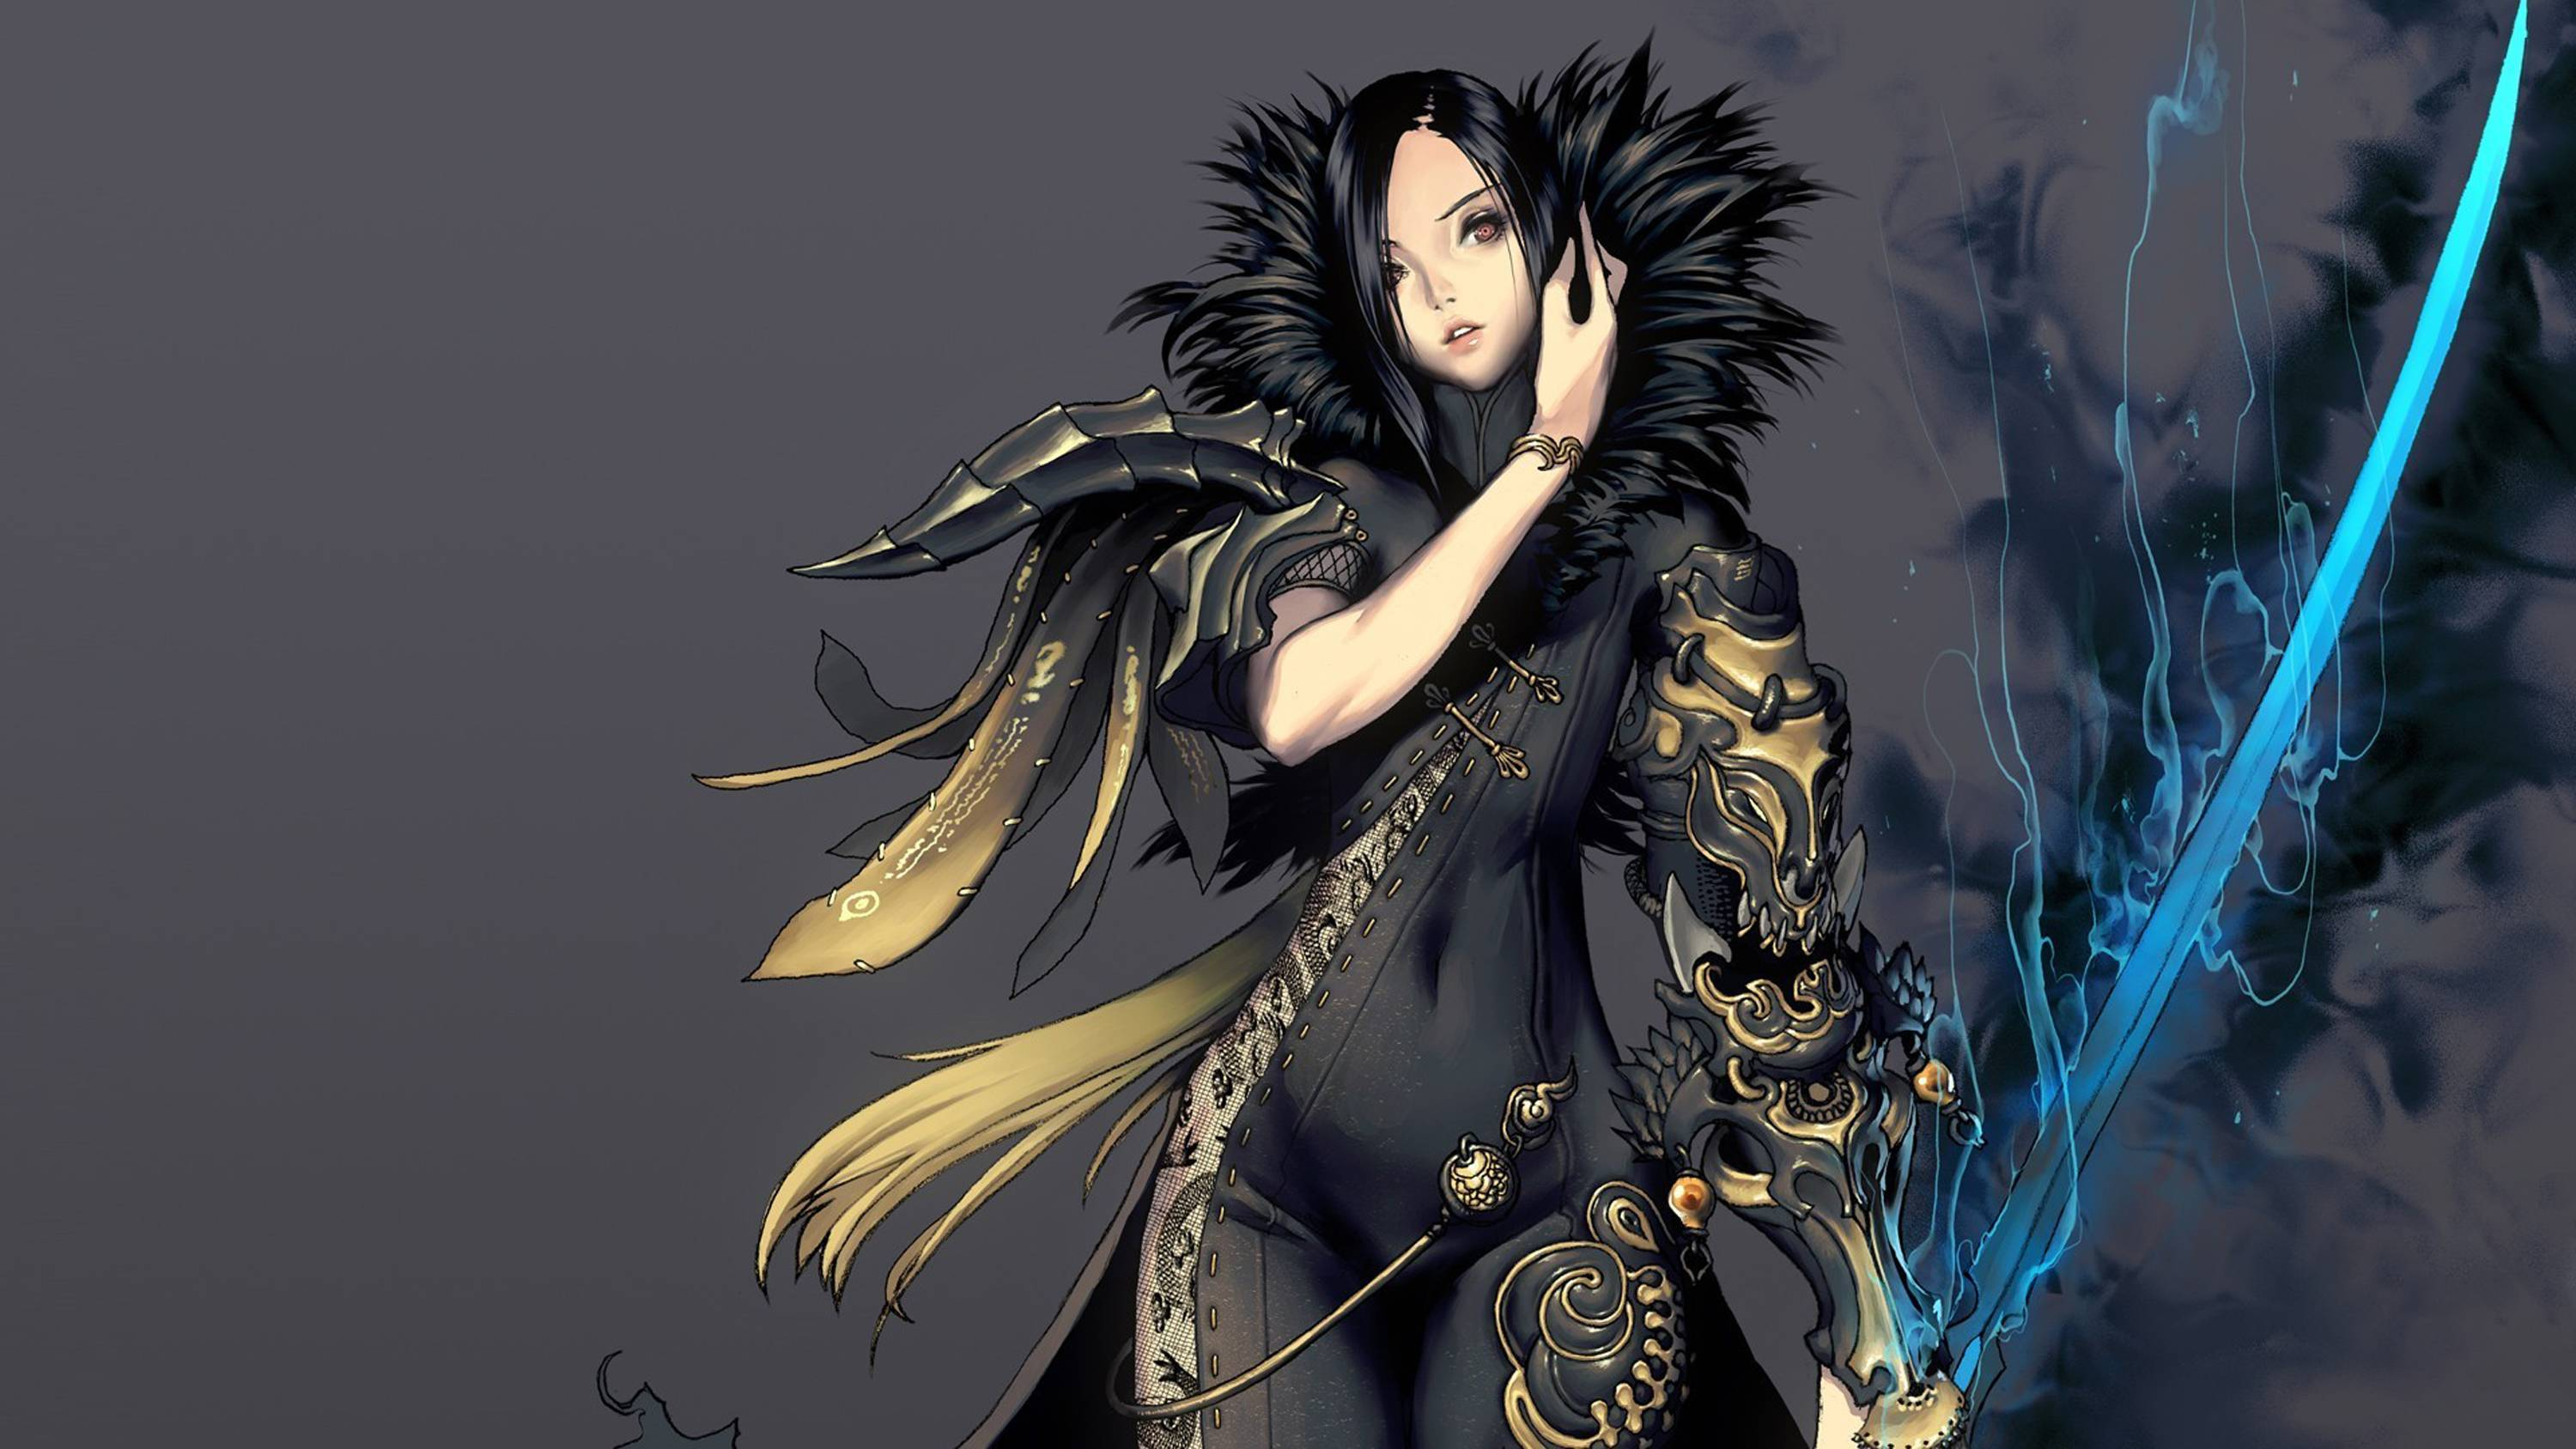 Blade N Soul Anime Characters : Blade and soul wallpapers wallpaper cave